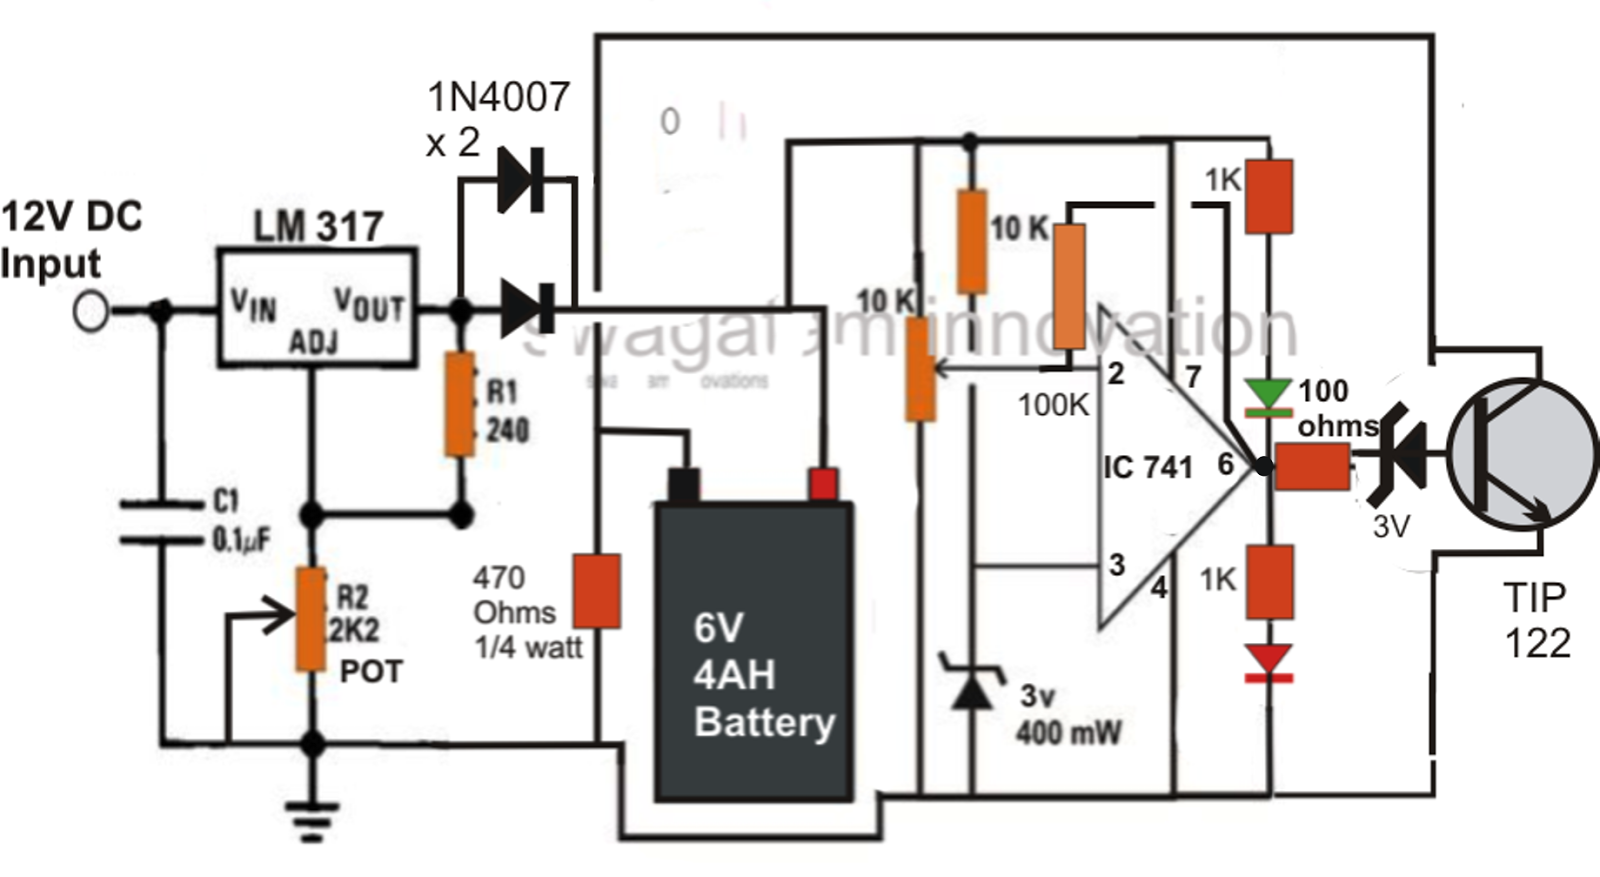 7 lead wiring diagram with High Quality 6v Charger Circuit on P 0996b43f802e30bc as well Volume Control Wiring Diagram further For Popcorn Machine Wiring Diagrams together with Heater Mh12t Gasfired Infrared Portable Heater Parts C 197733 197735 282761 in addition Jensen Vm8113.